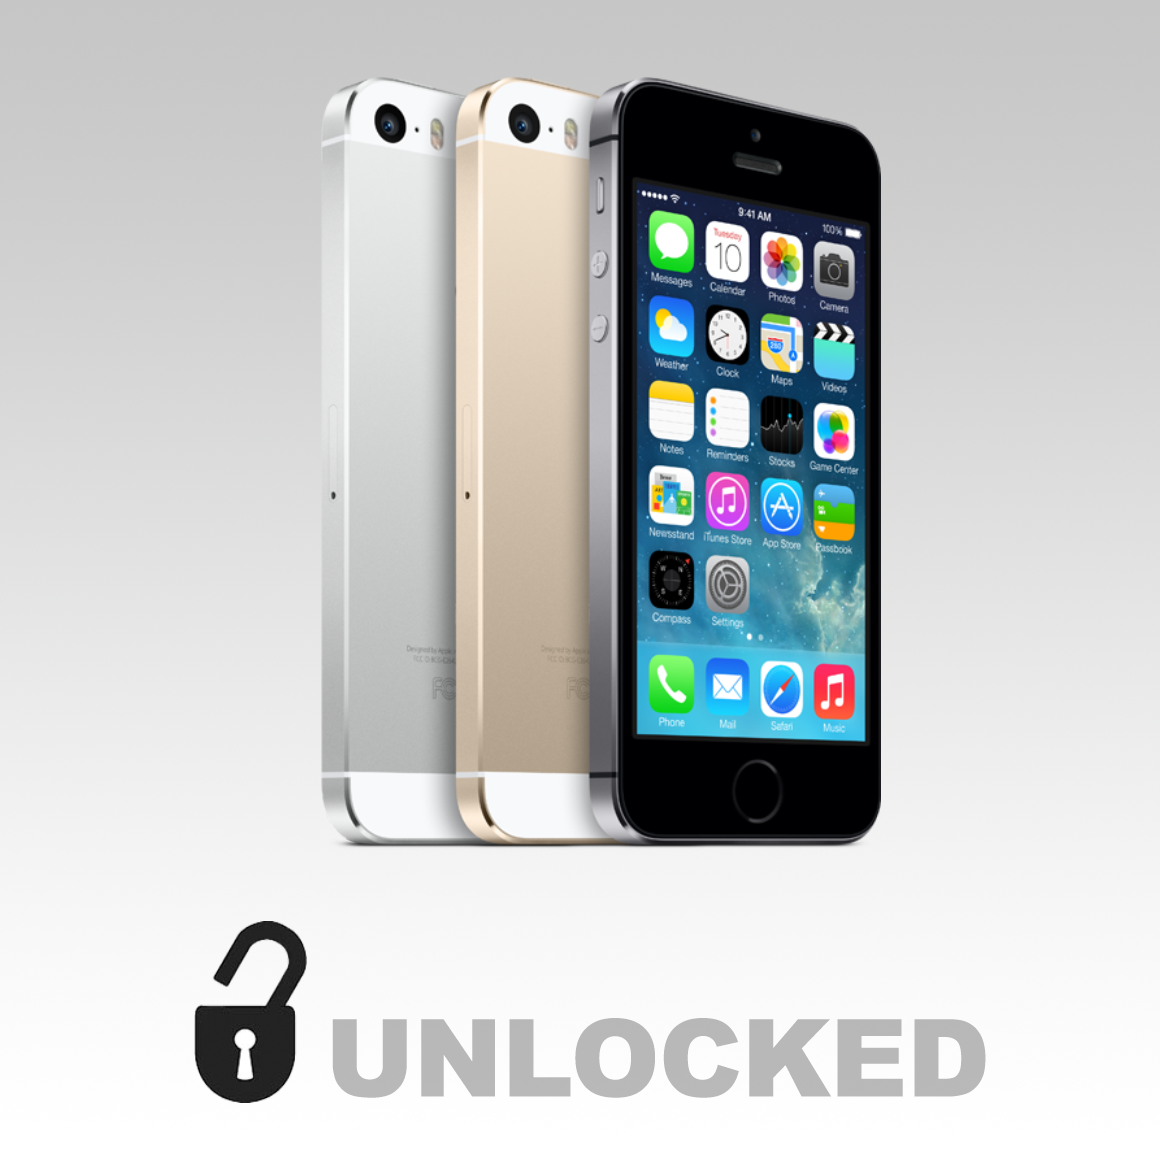 Unlocked apple iphone 5s 16gb space gray paymore.